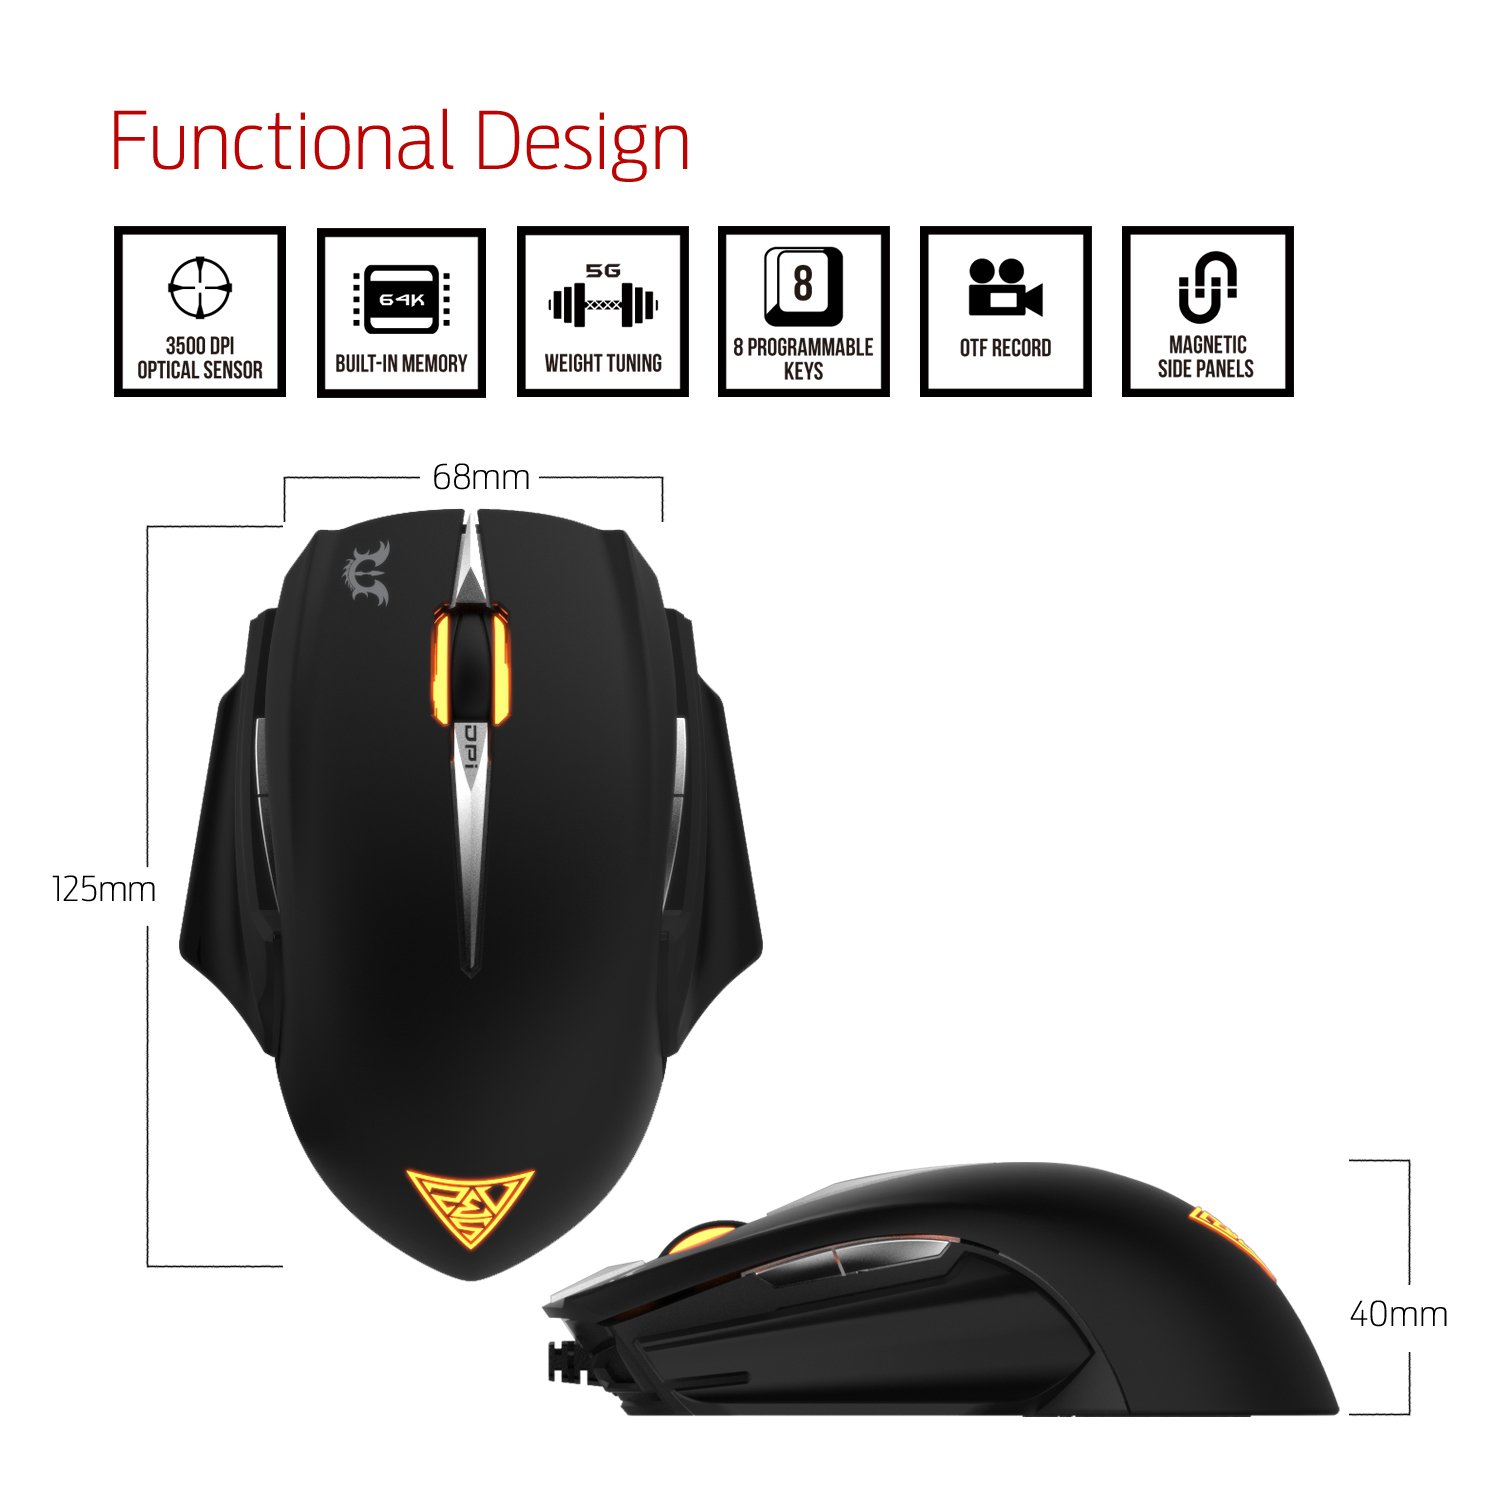 GAMDIAS Erebos GMS7500 Optical MOBA Gaming Mouse, 3 Set Ambidextrous  Adjustable Side Panels Weight System, 7 Programmable Buttons, 8200 DPI for PC by GAMDIAS (Image #2)